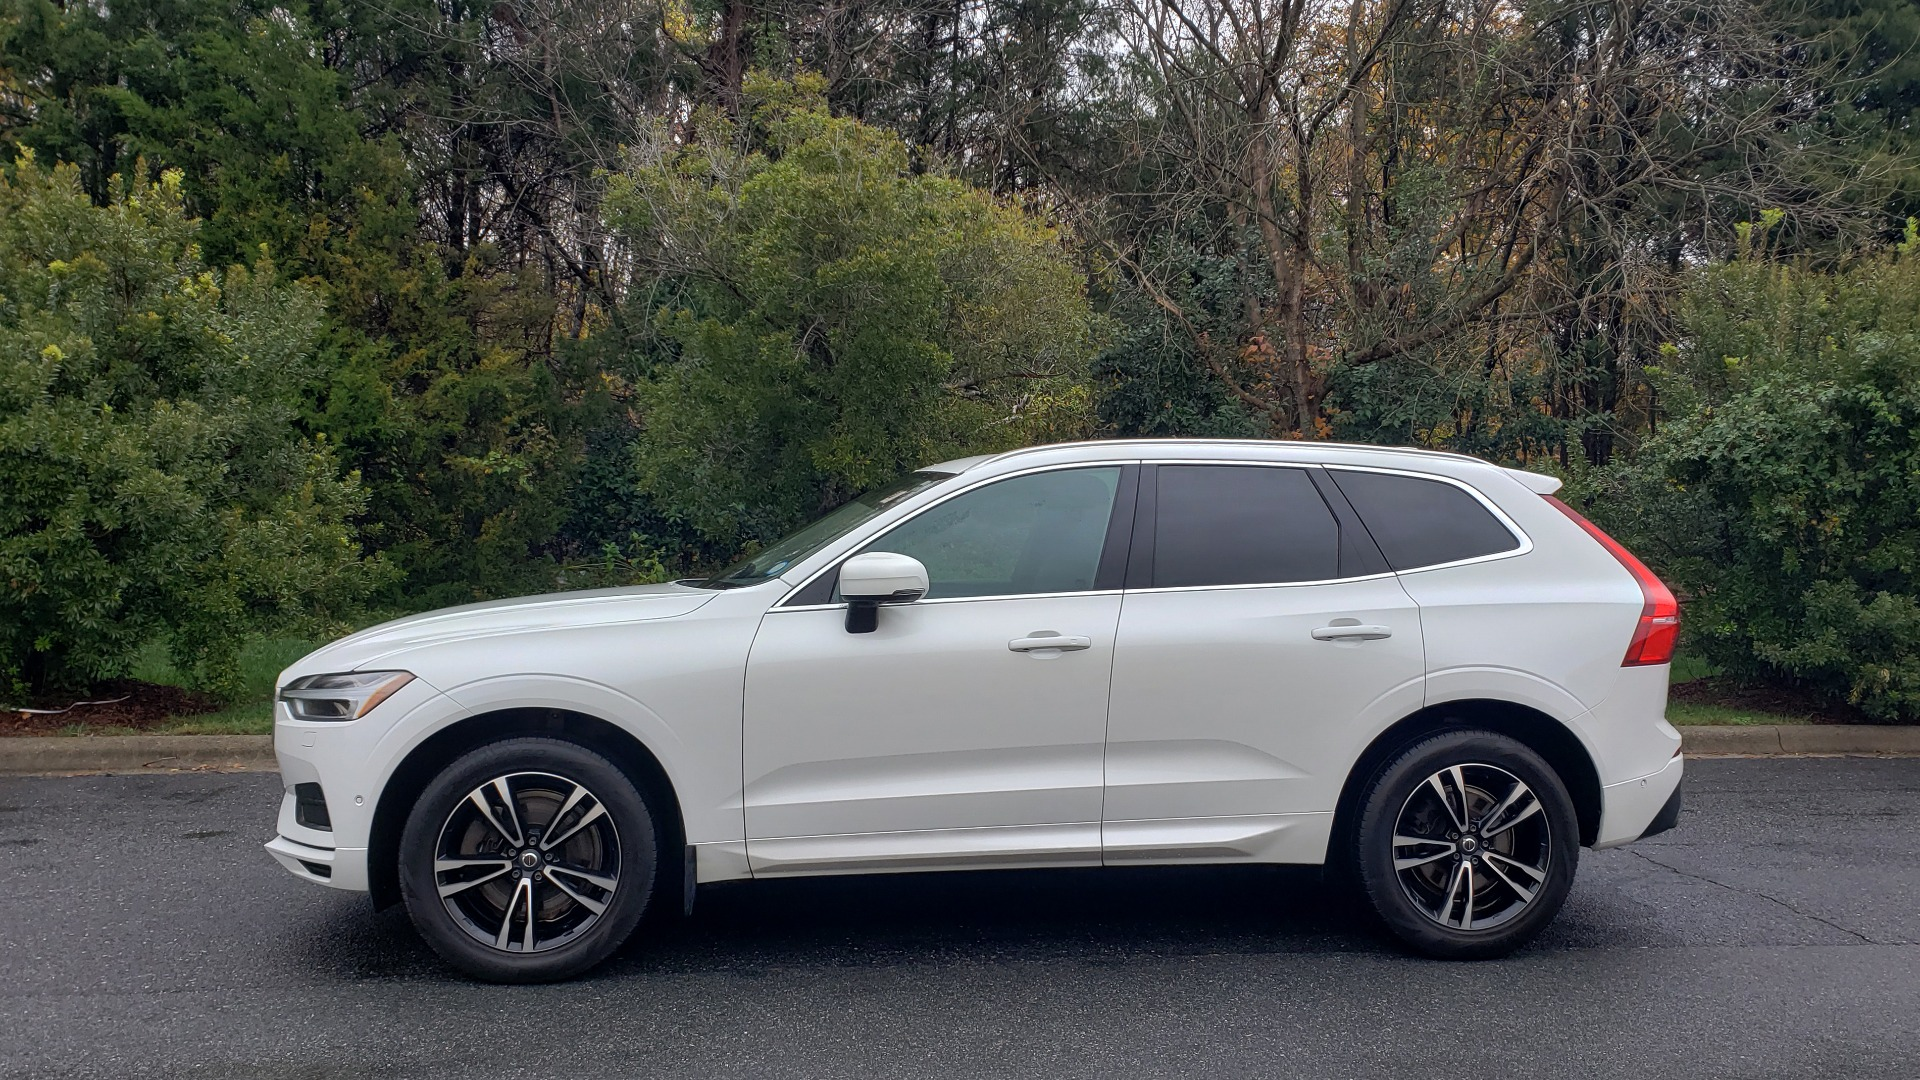 Used 2018 Volvo XC60 MOMENTUM AWD / NAV / SUNROOF / LKA / BLIS / PRK ASST for sale Sold at Formula Imports in Charlotte NC 28227 2